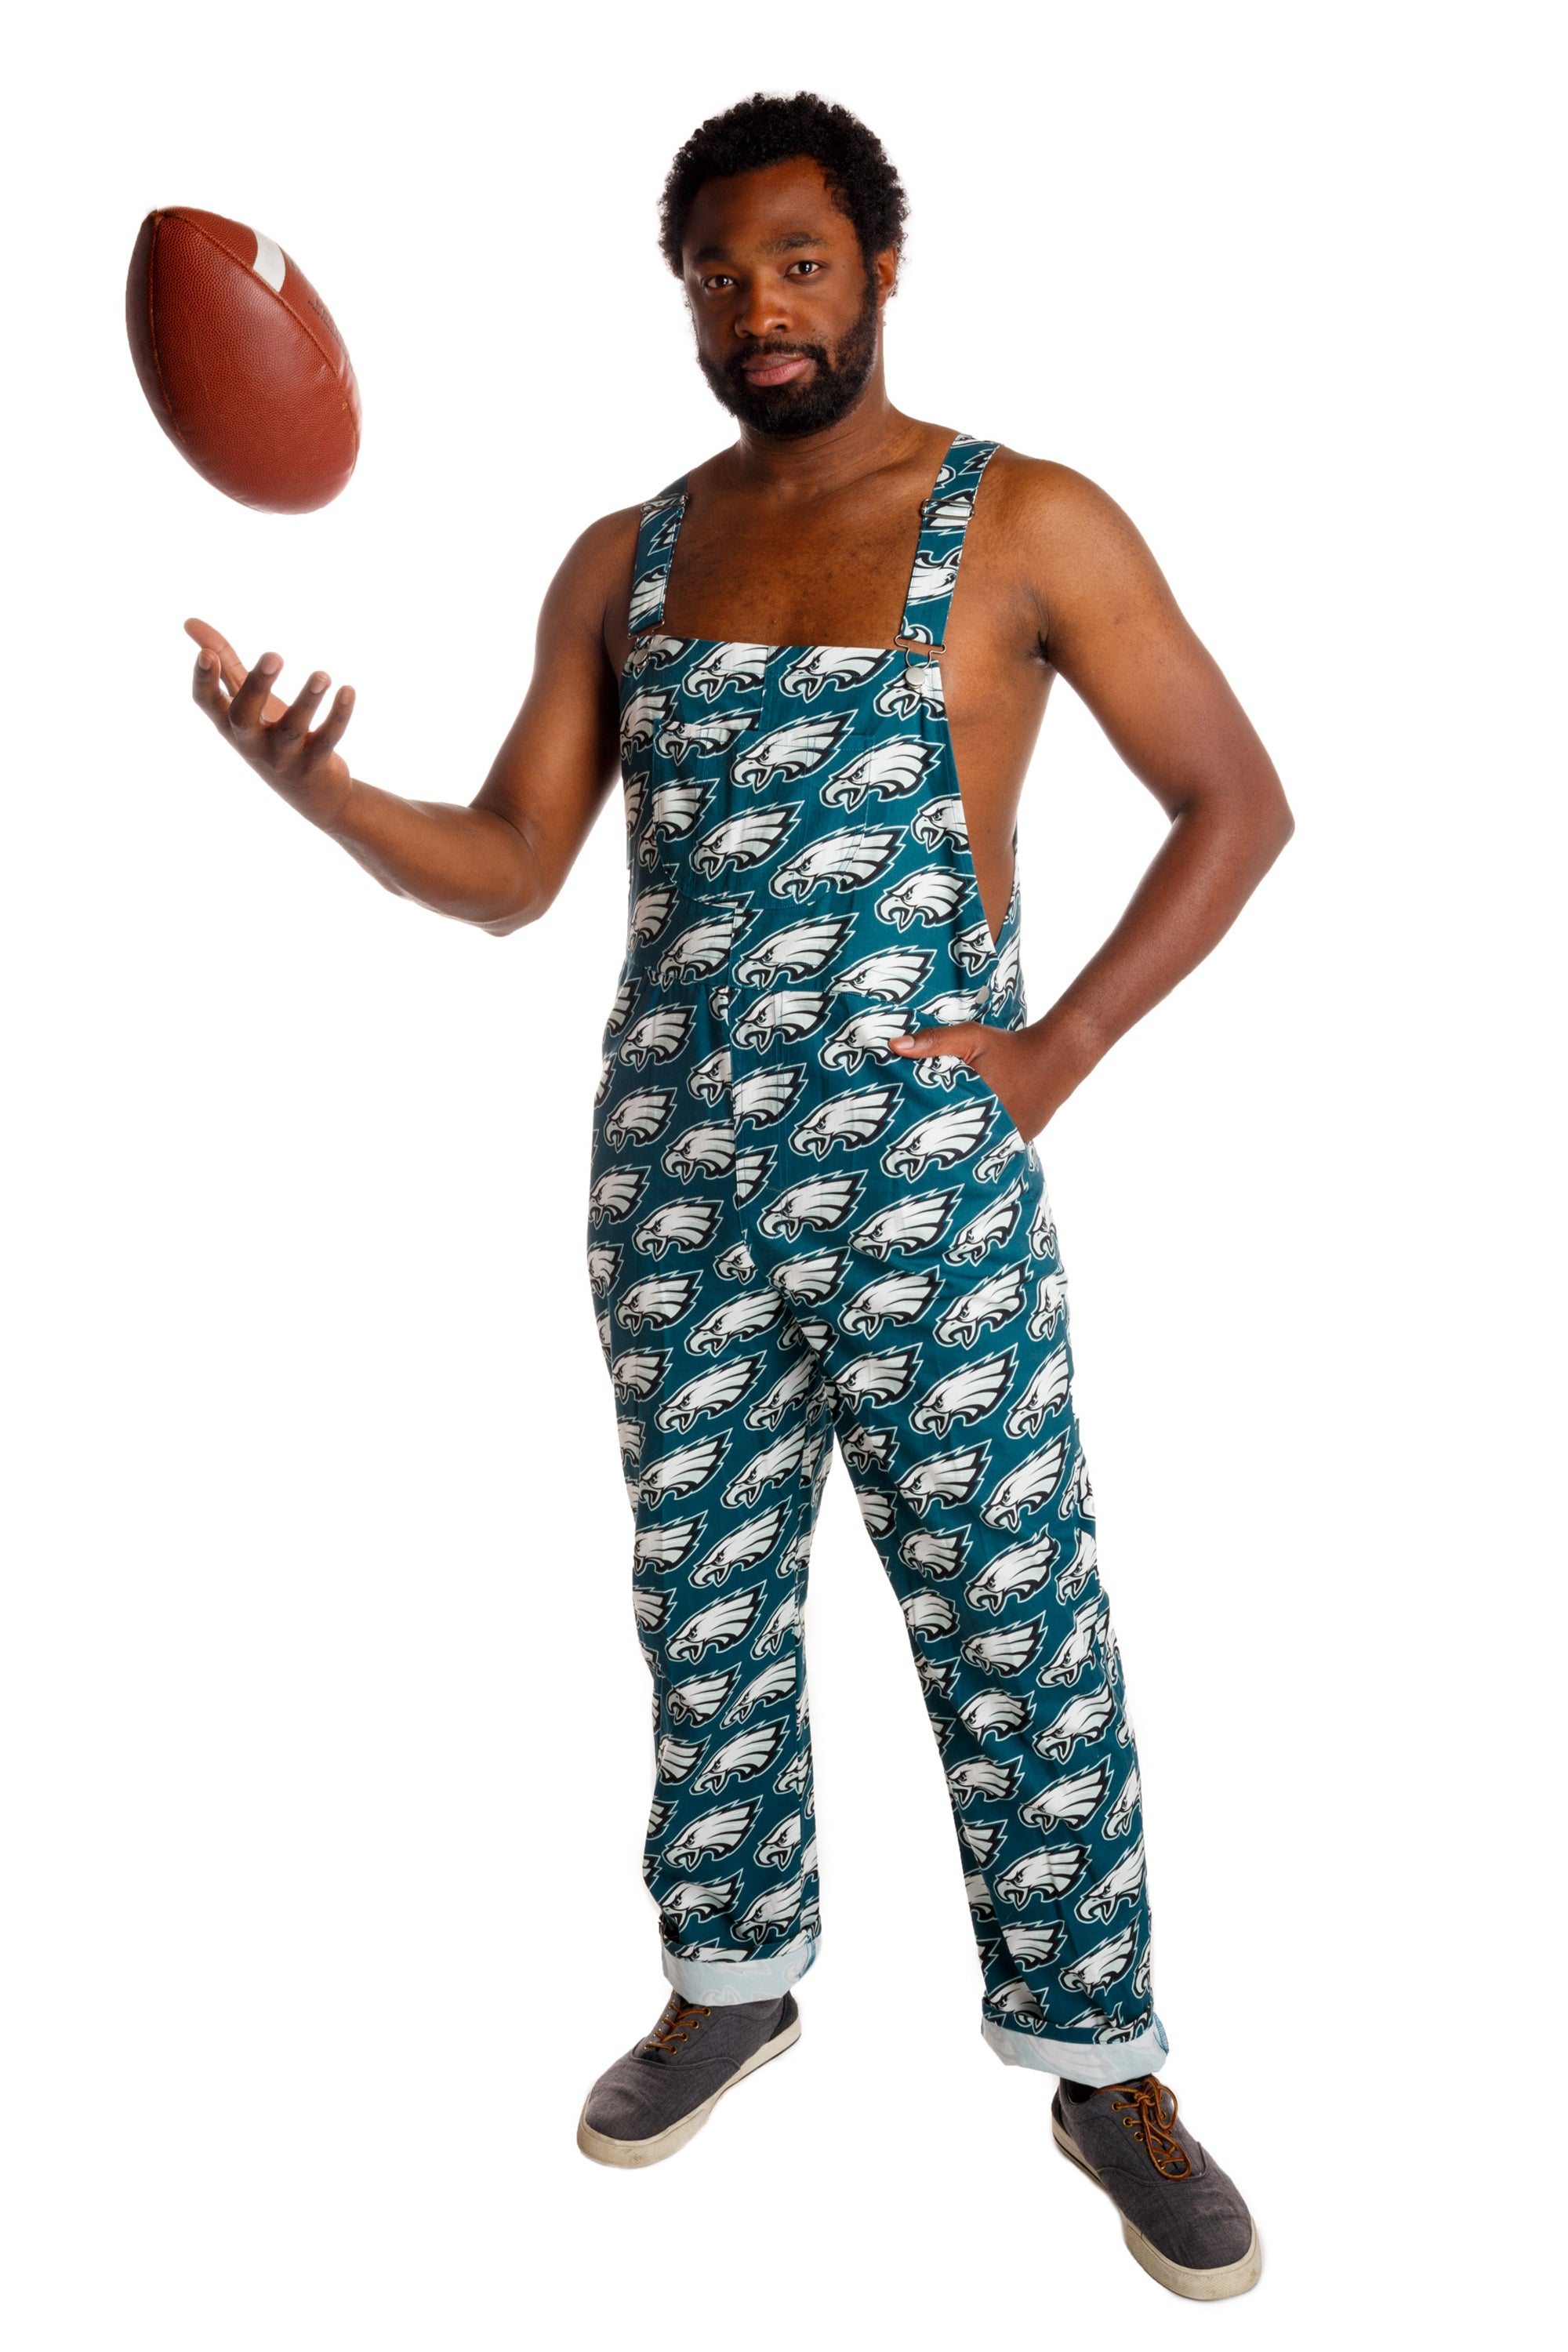 new arrival a30ca c3f01 The Philadelphia Eagles | Unisex NFL Overalls